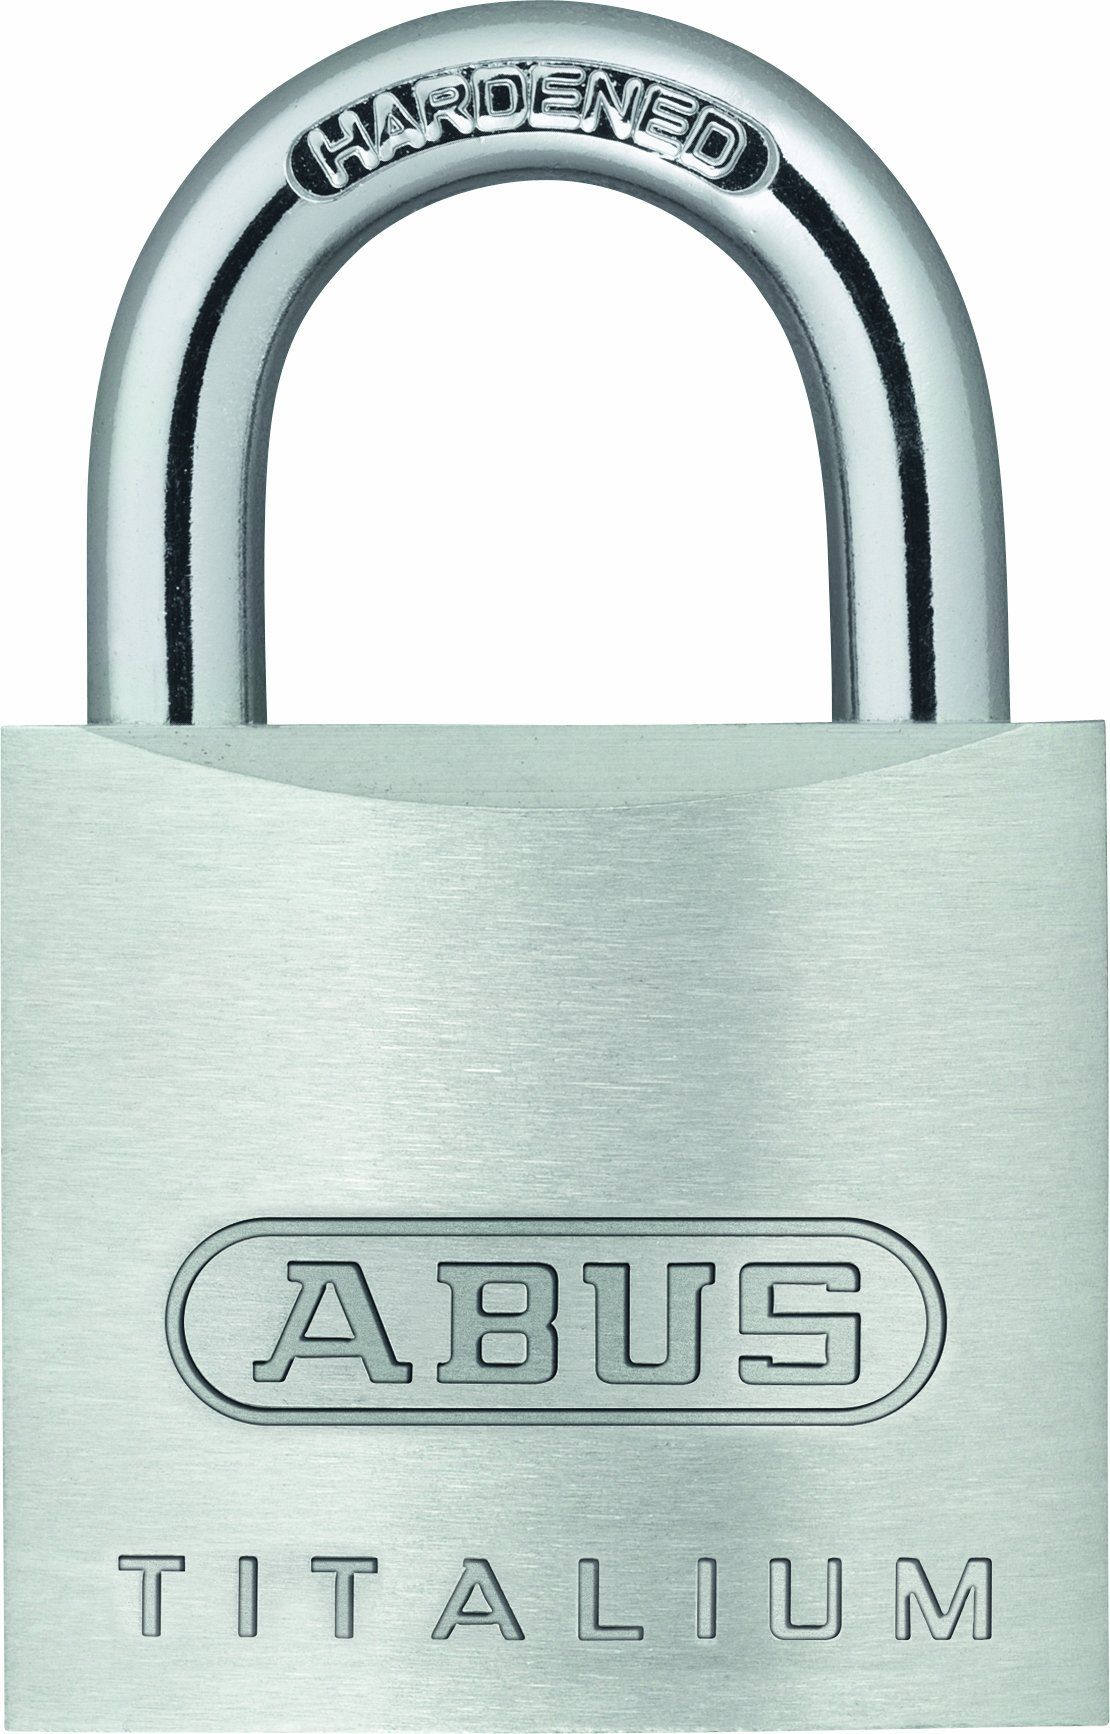 ABUS 54TI/30 KD C Titalium Aluminum Alloy Keyed Different Padlock 1-1/4-Inch with 3/16-Inch Diameter Hardened Steel Shackle